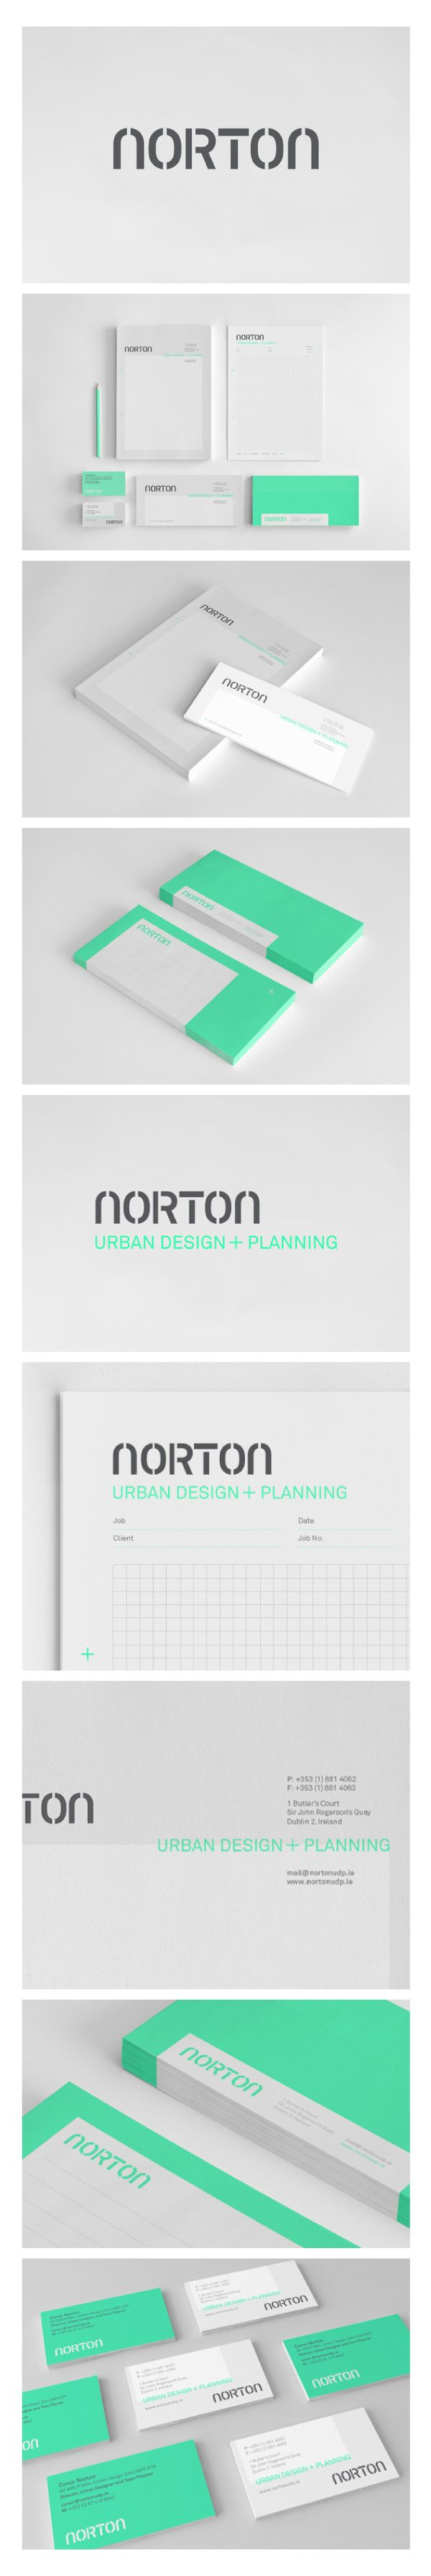 Visual Identity by Some Studio (based in Galway, Ireland); Norton UDP is an Urban Design and Planning consultancy that works to meet the needs of both private and public sectors. The design solution uses positive and negative space to emphasise the company's flexible approach to urban design, architecture, planning and development.